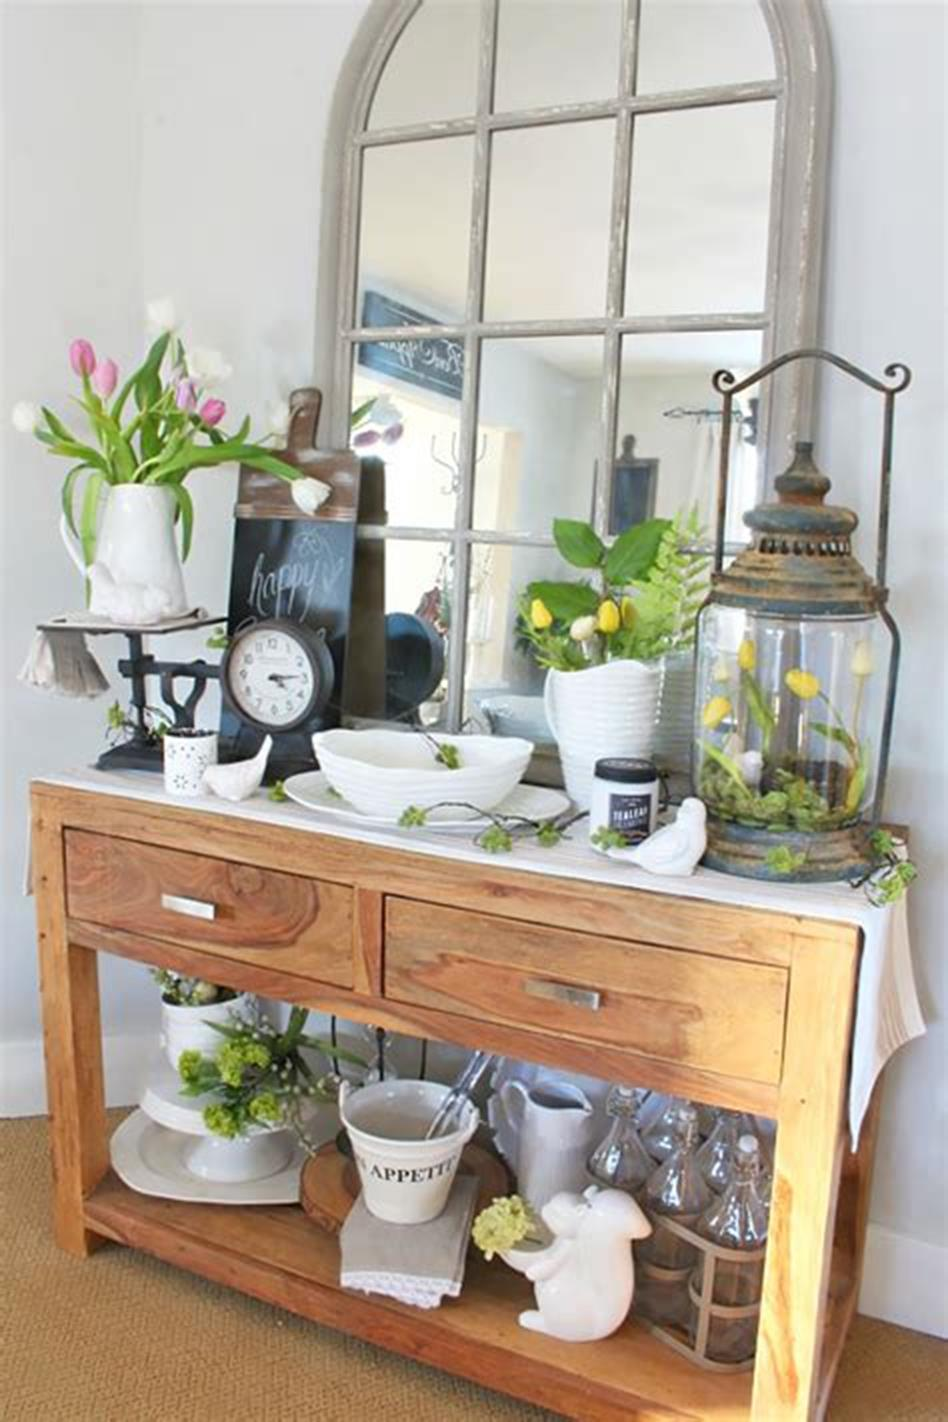 42 DIY Beautiful Vintage Spring Decorations Ideas You Will Love 21